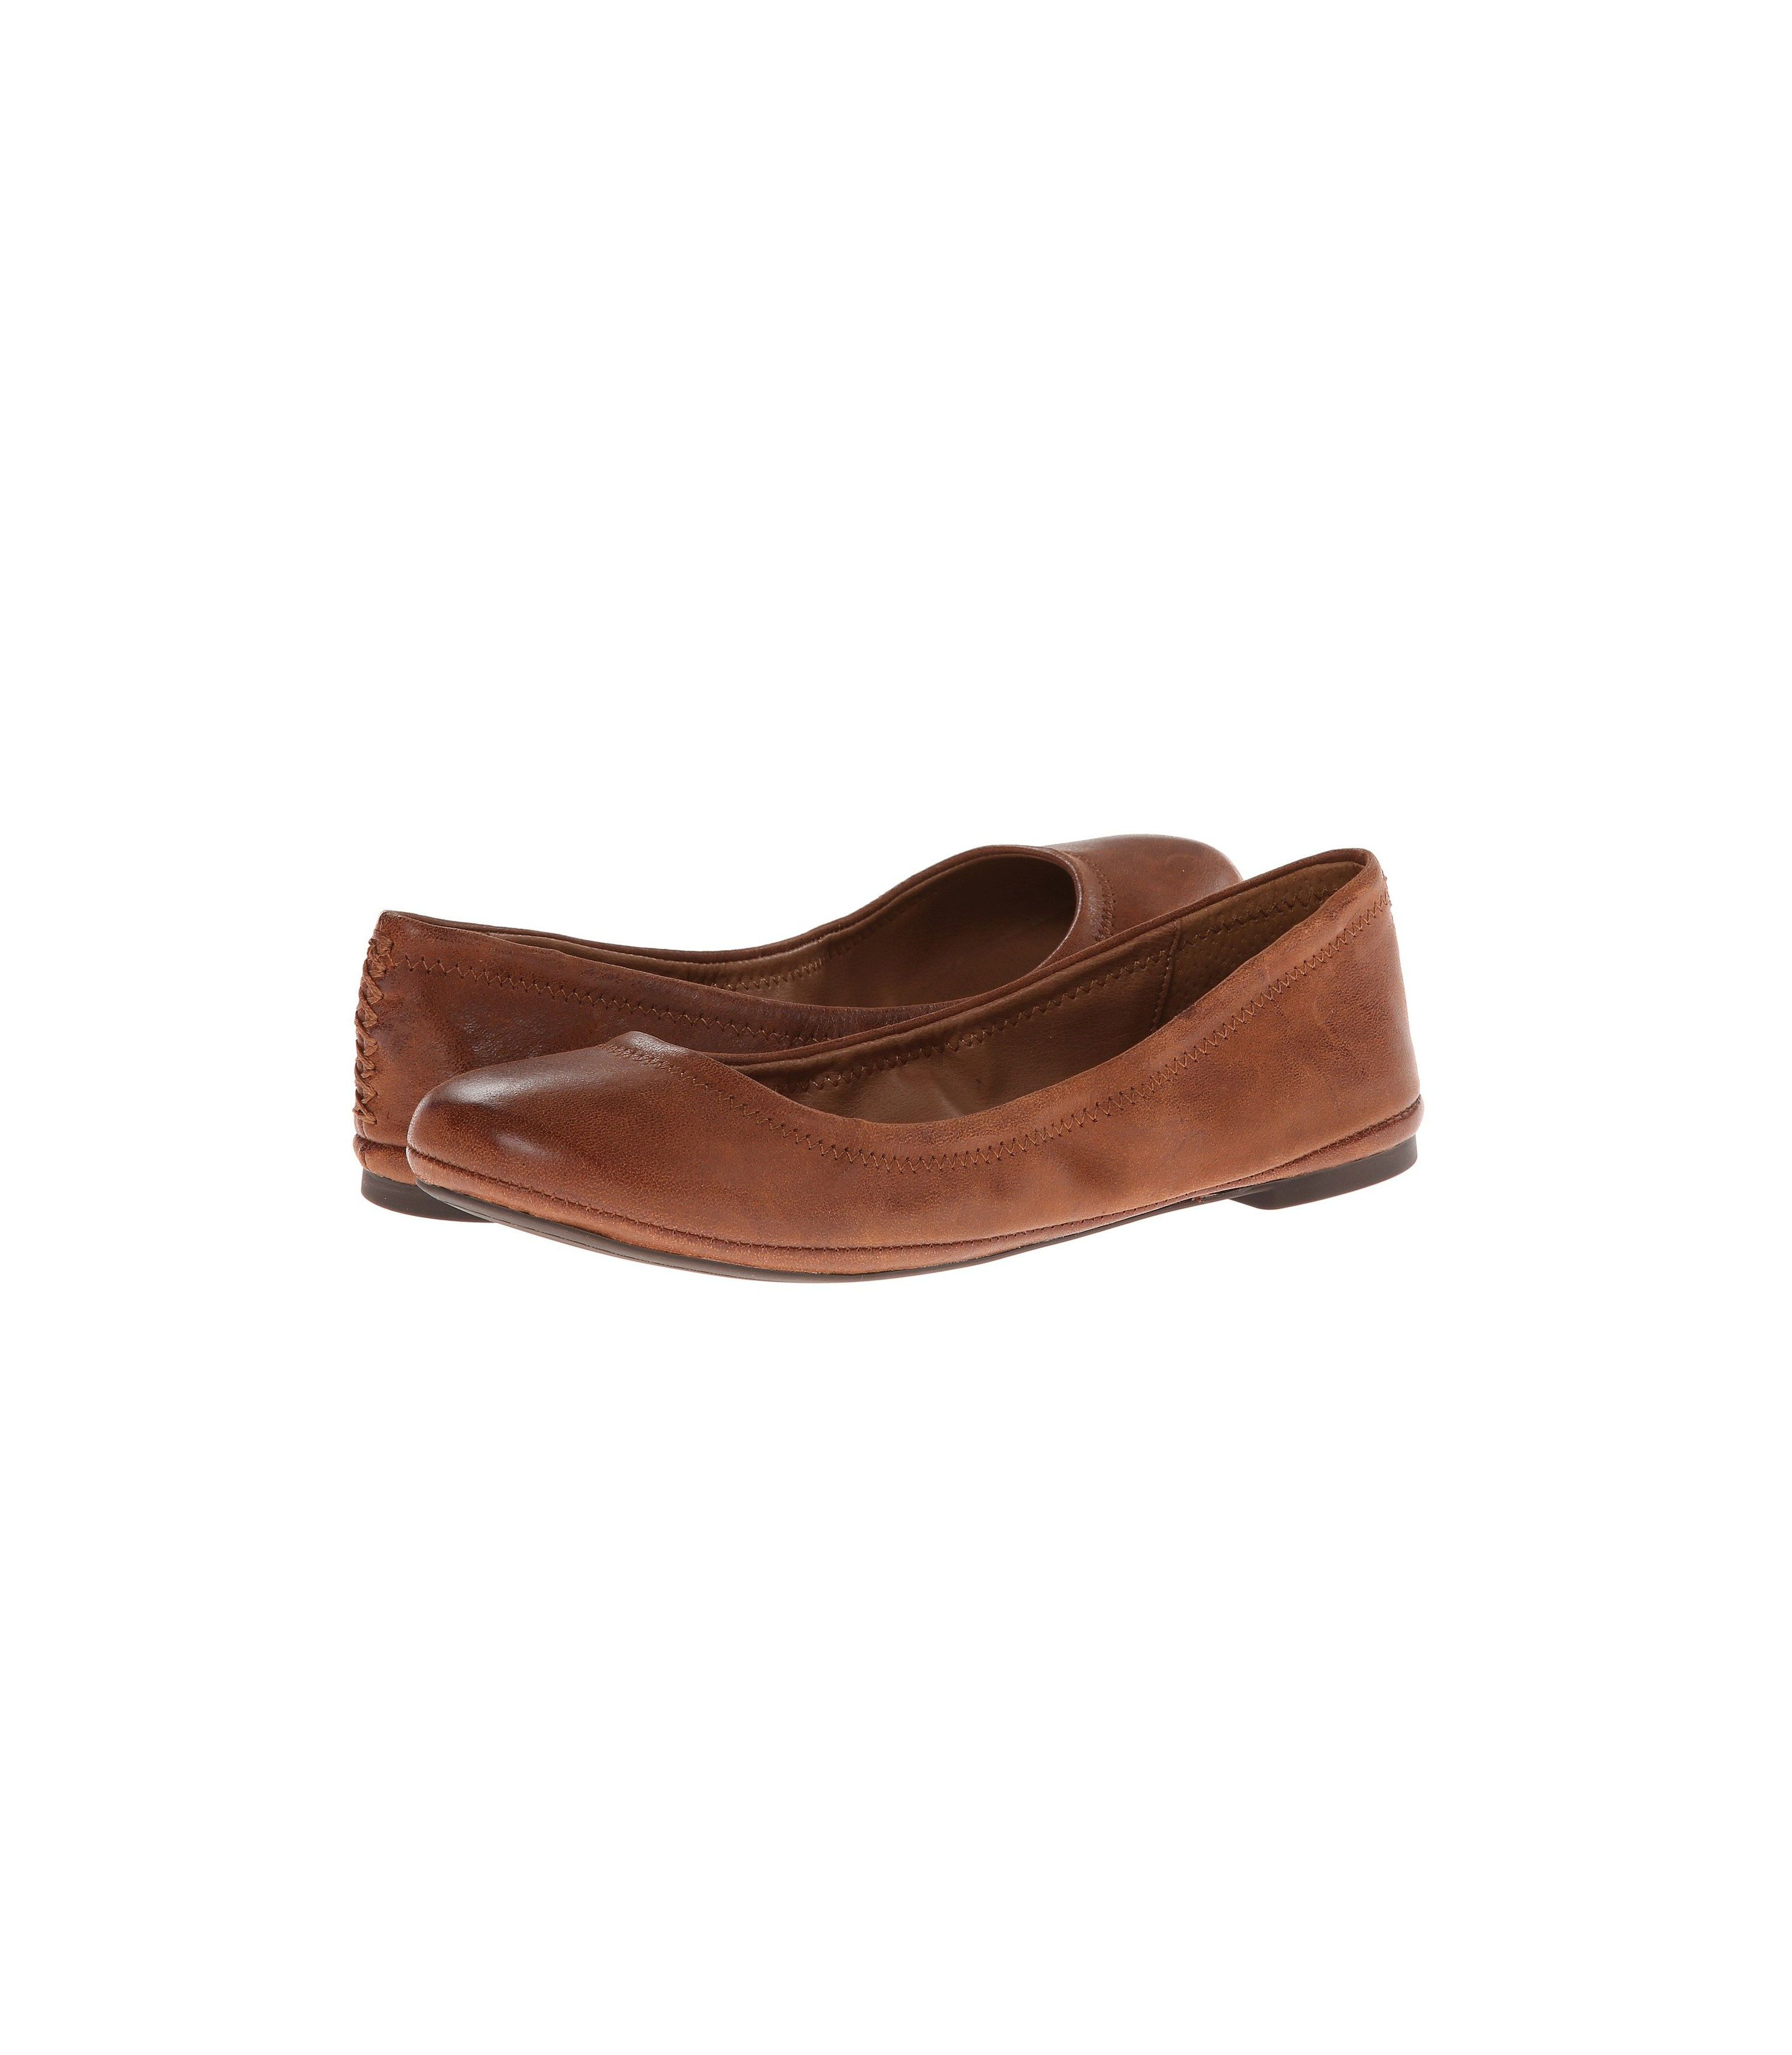 zappos shoes womens casual